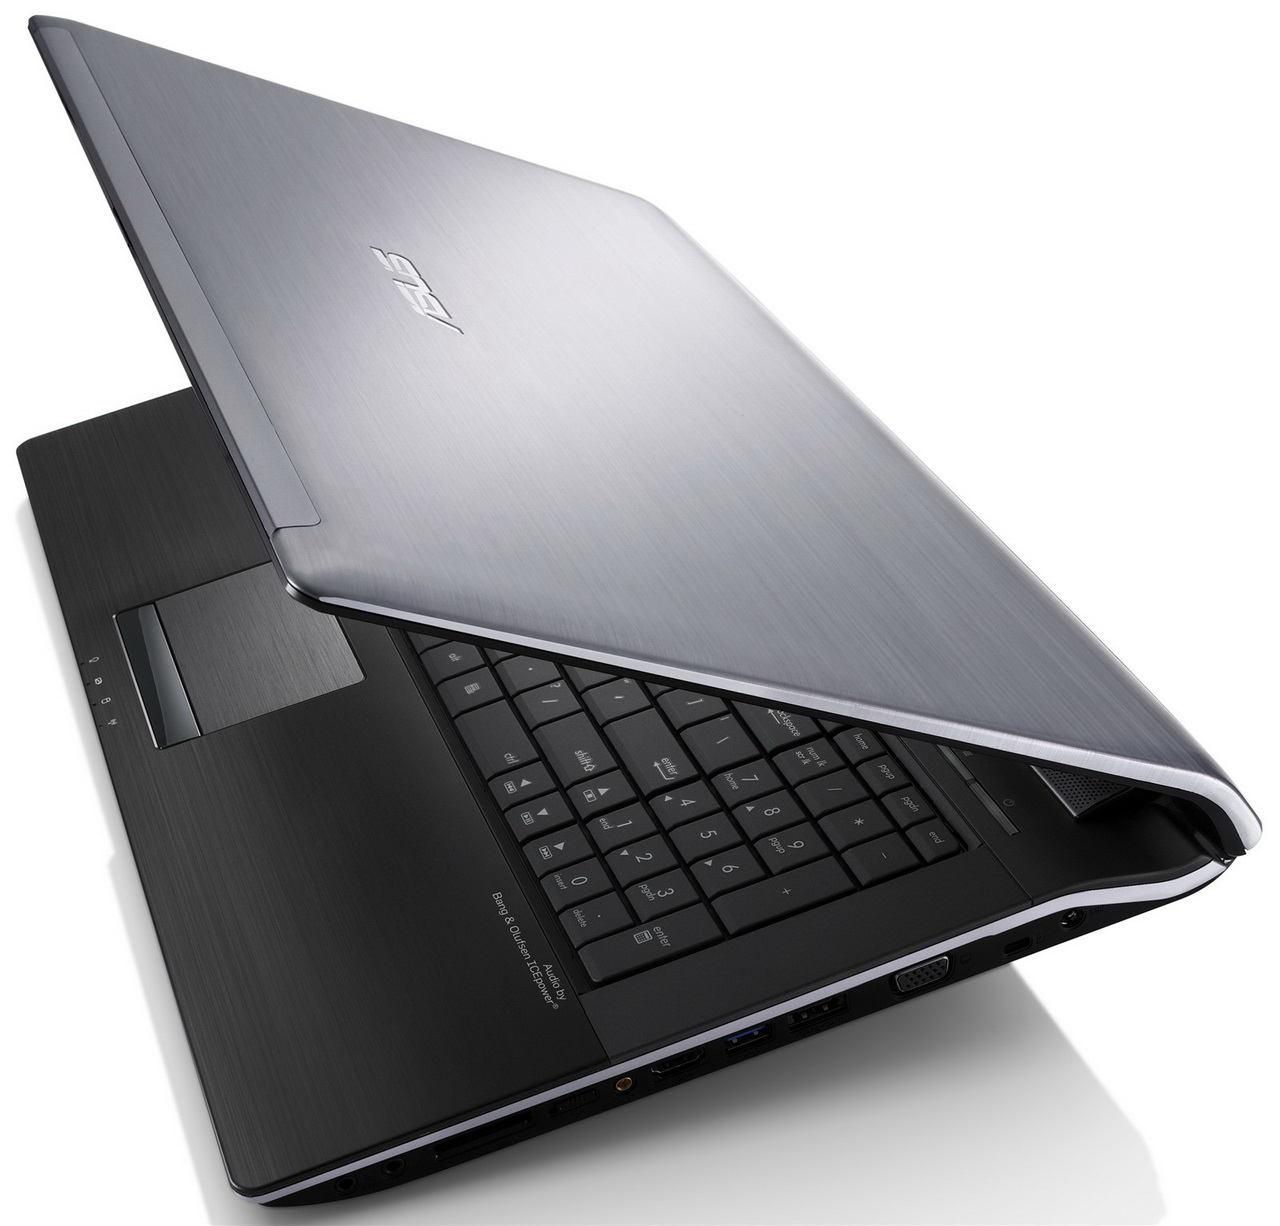 Laptop HD Image  Top Gadgets Review